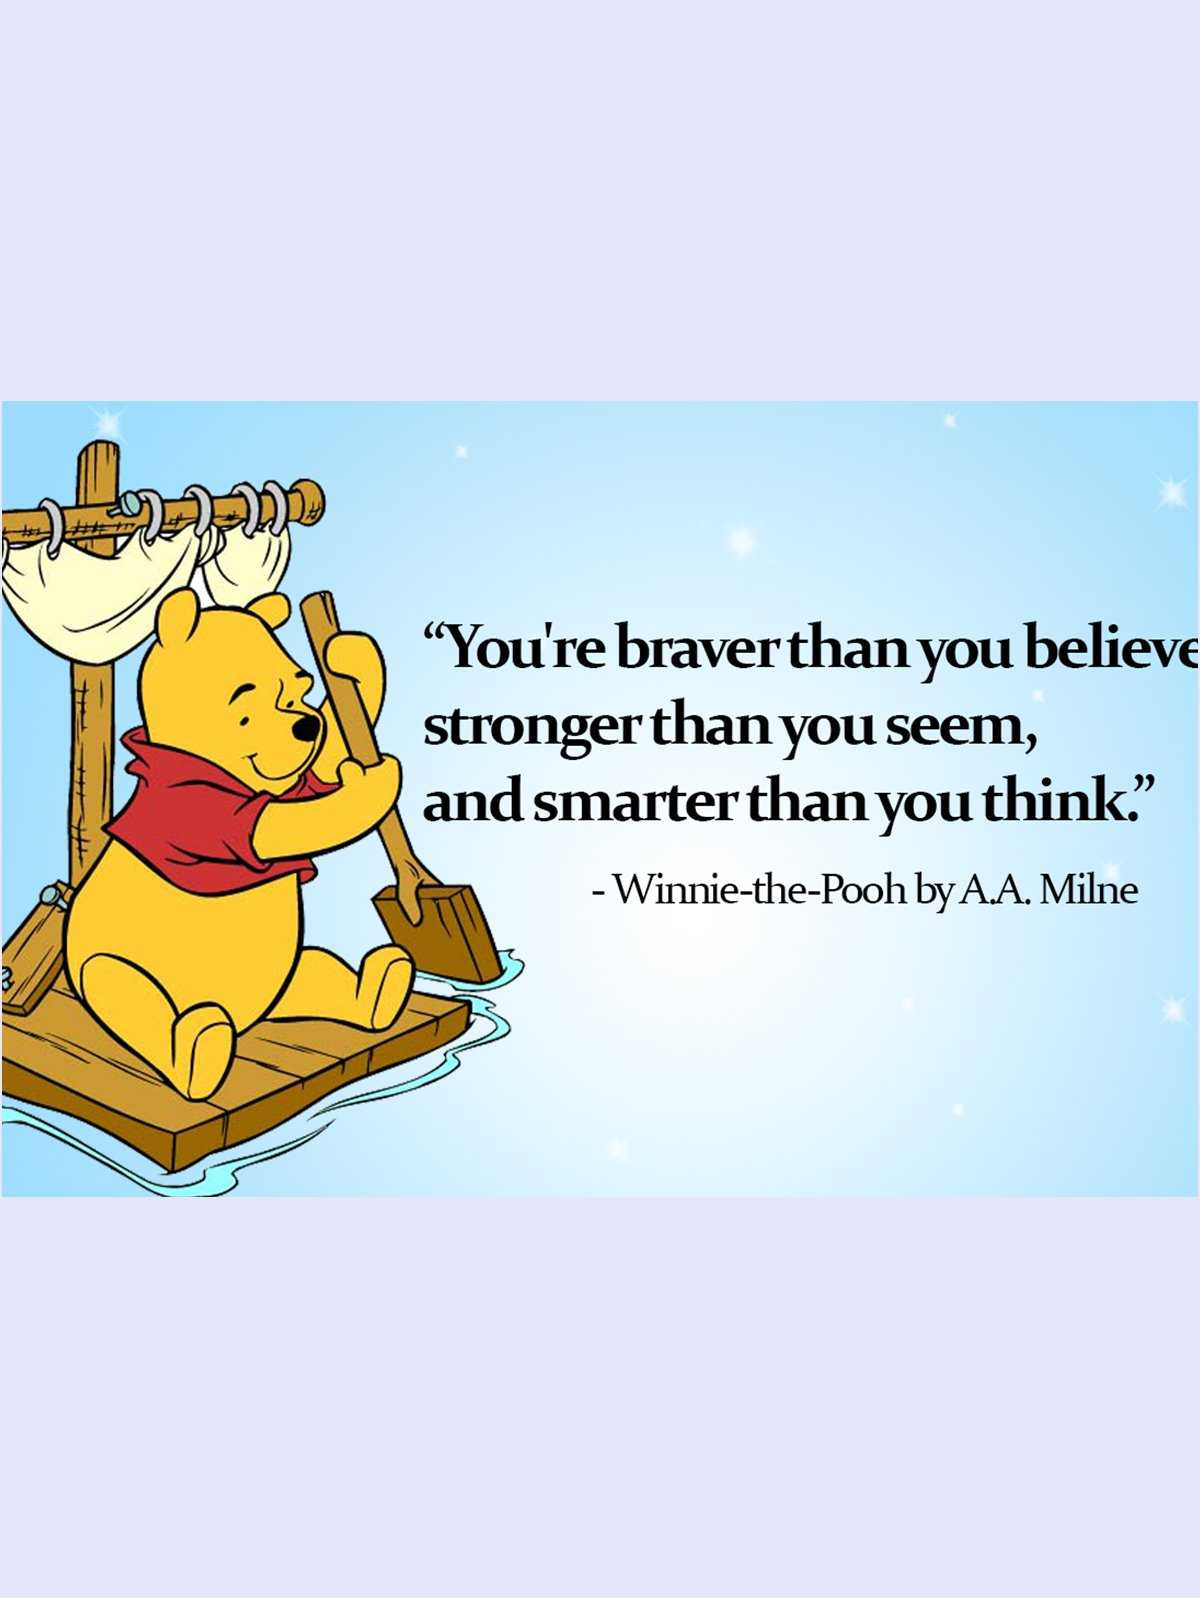 86 Winnie The Pooh Quotes To Fill Your Heart With Joy Boomsumo Quotes